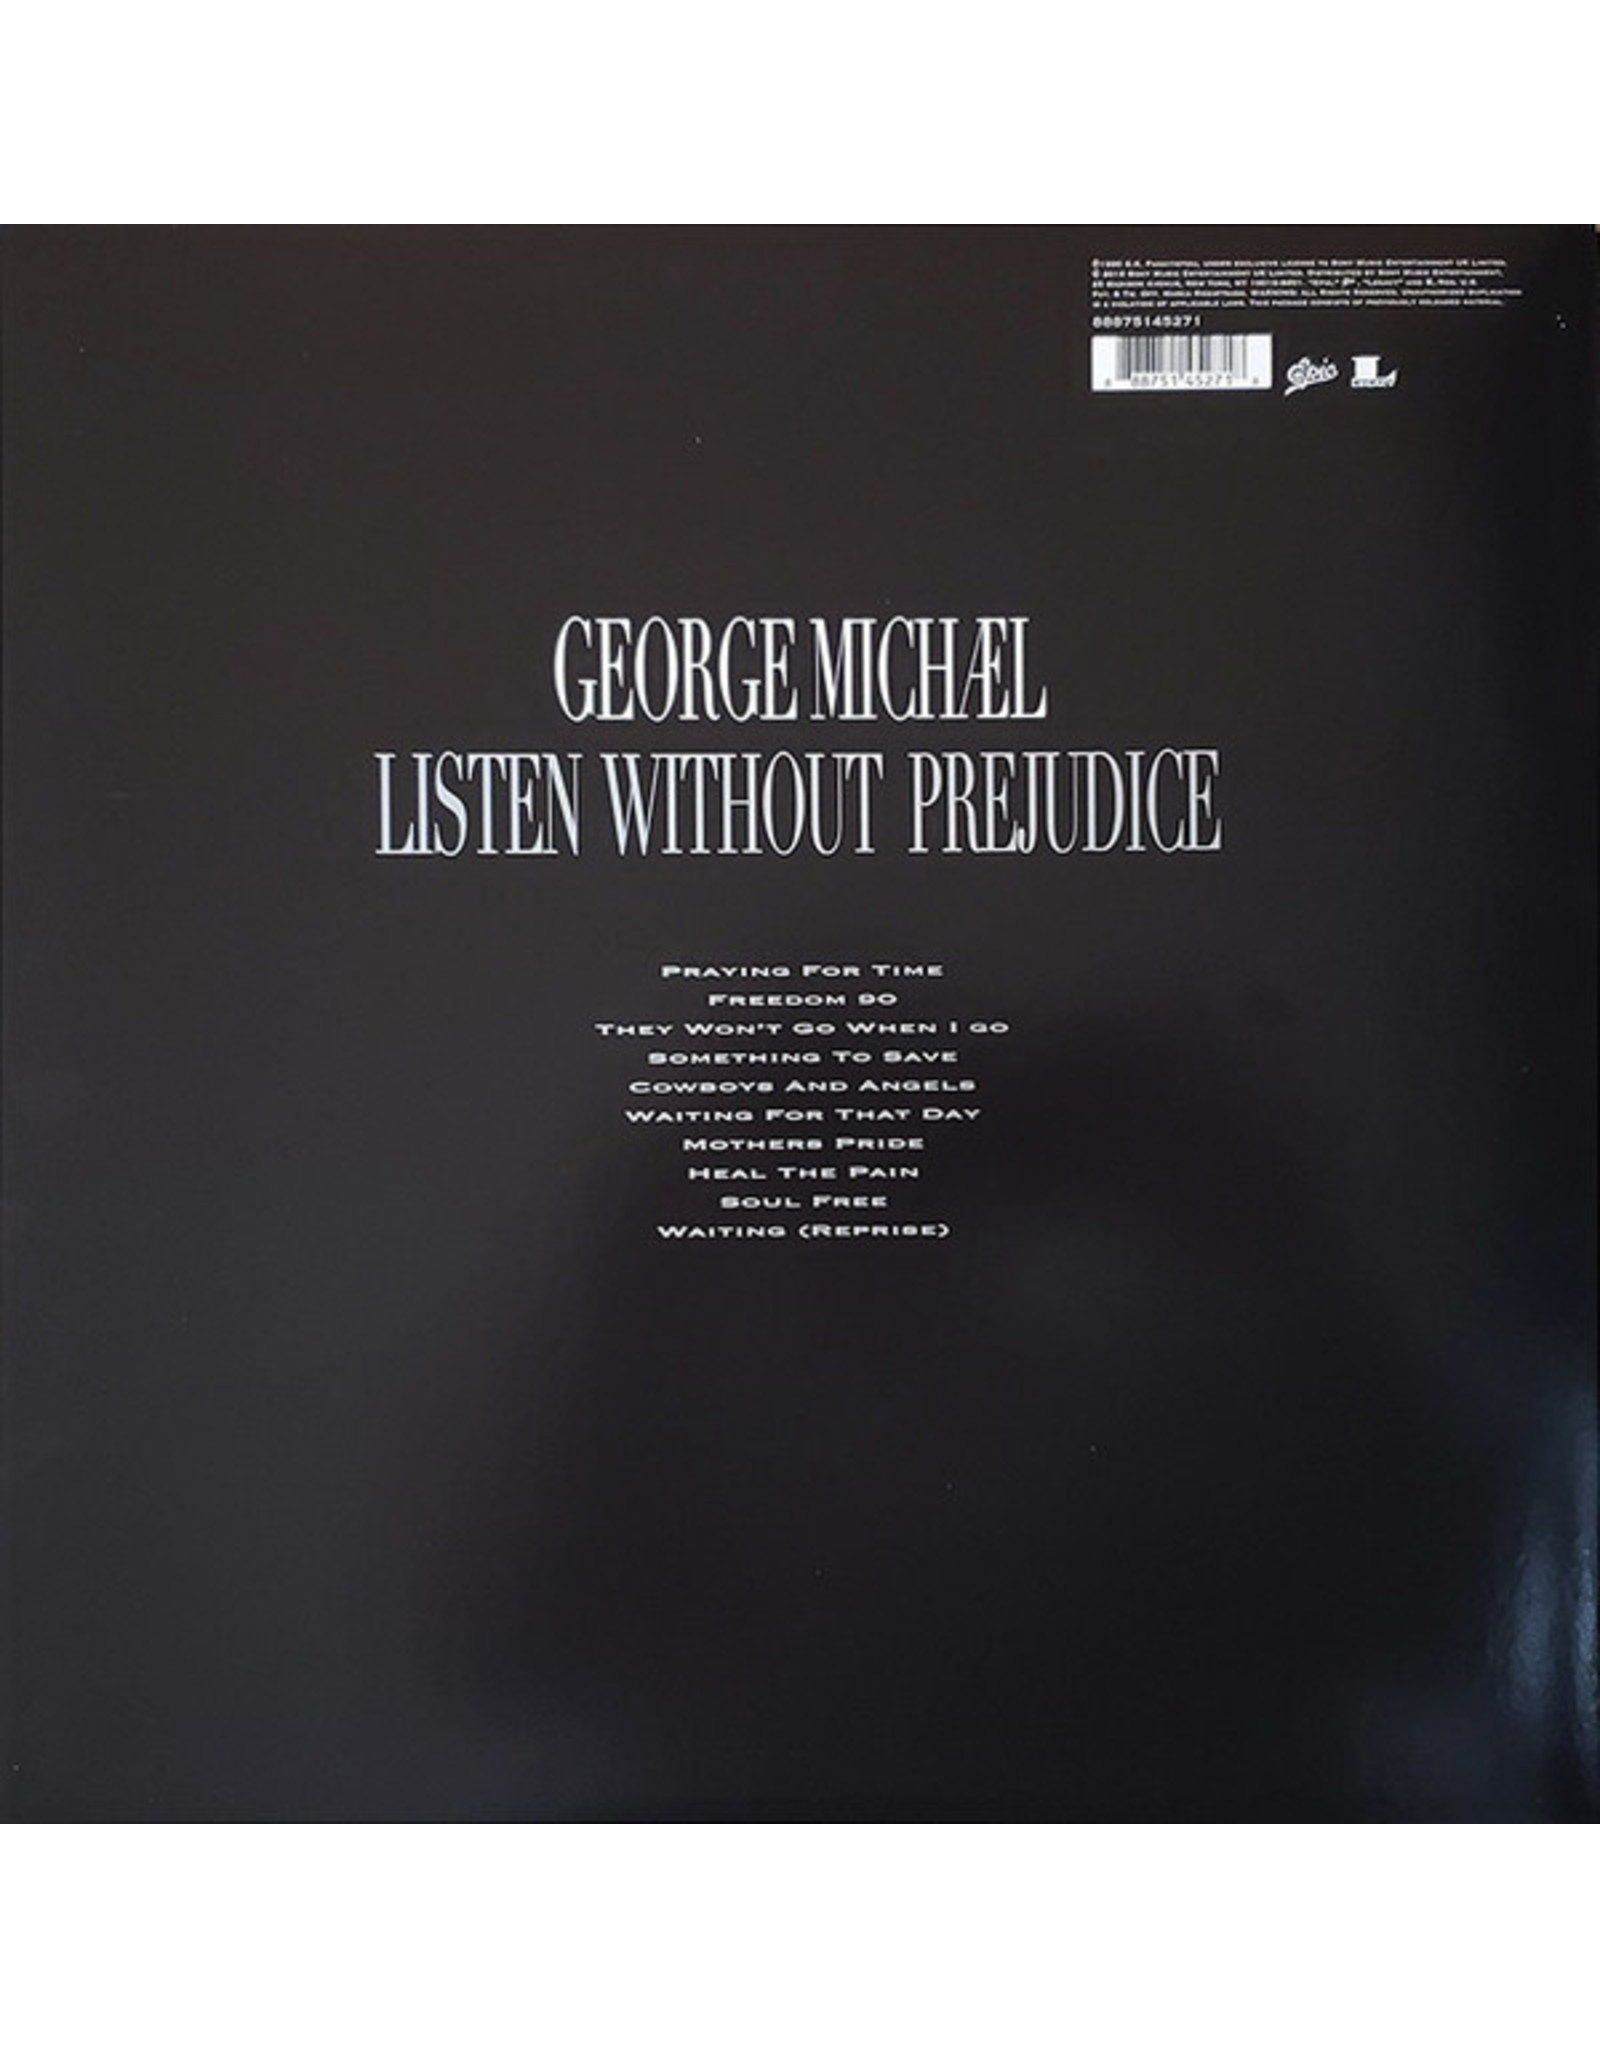 George Michael - Listen Without Prejudice Vol. 1 (25th Anniversary)